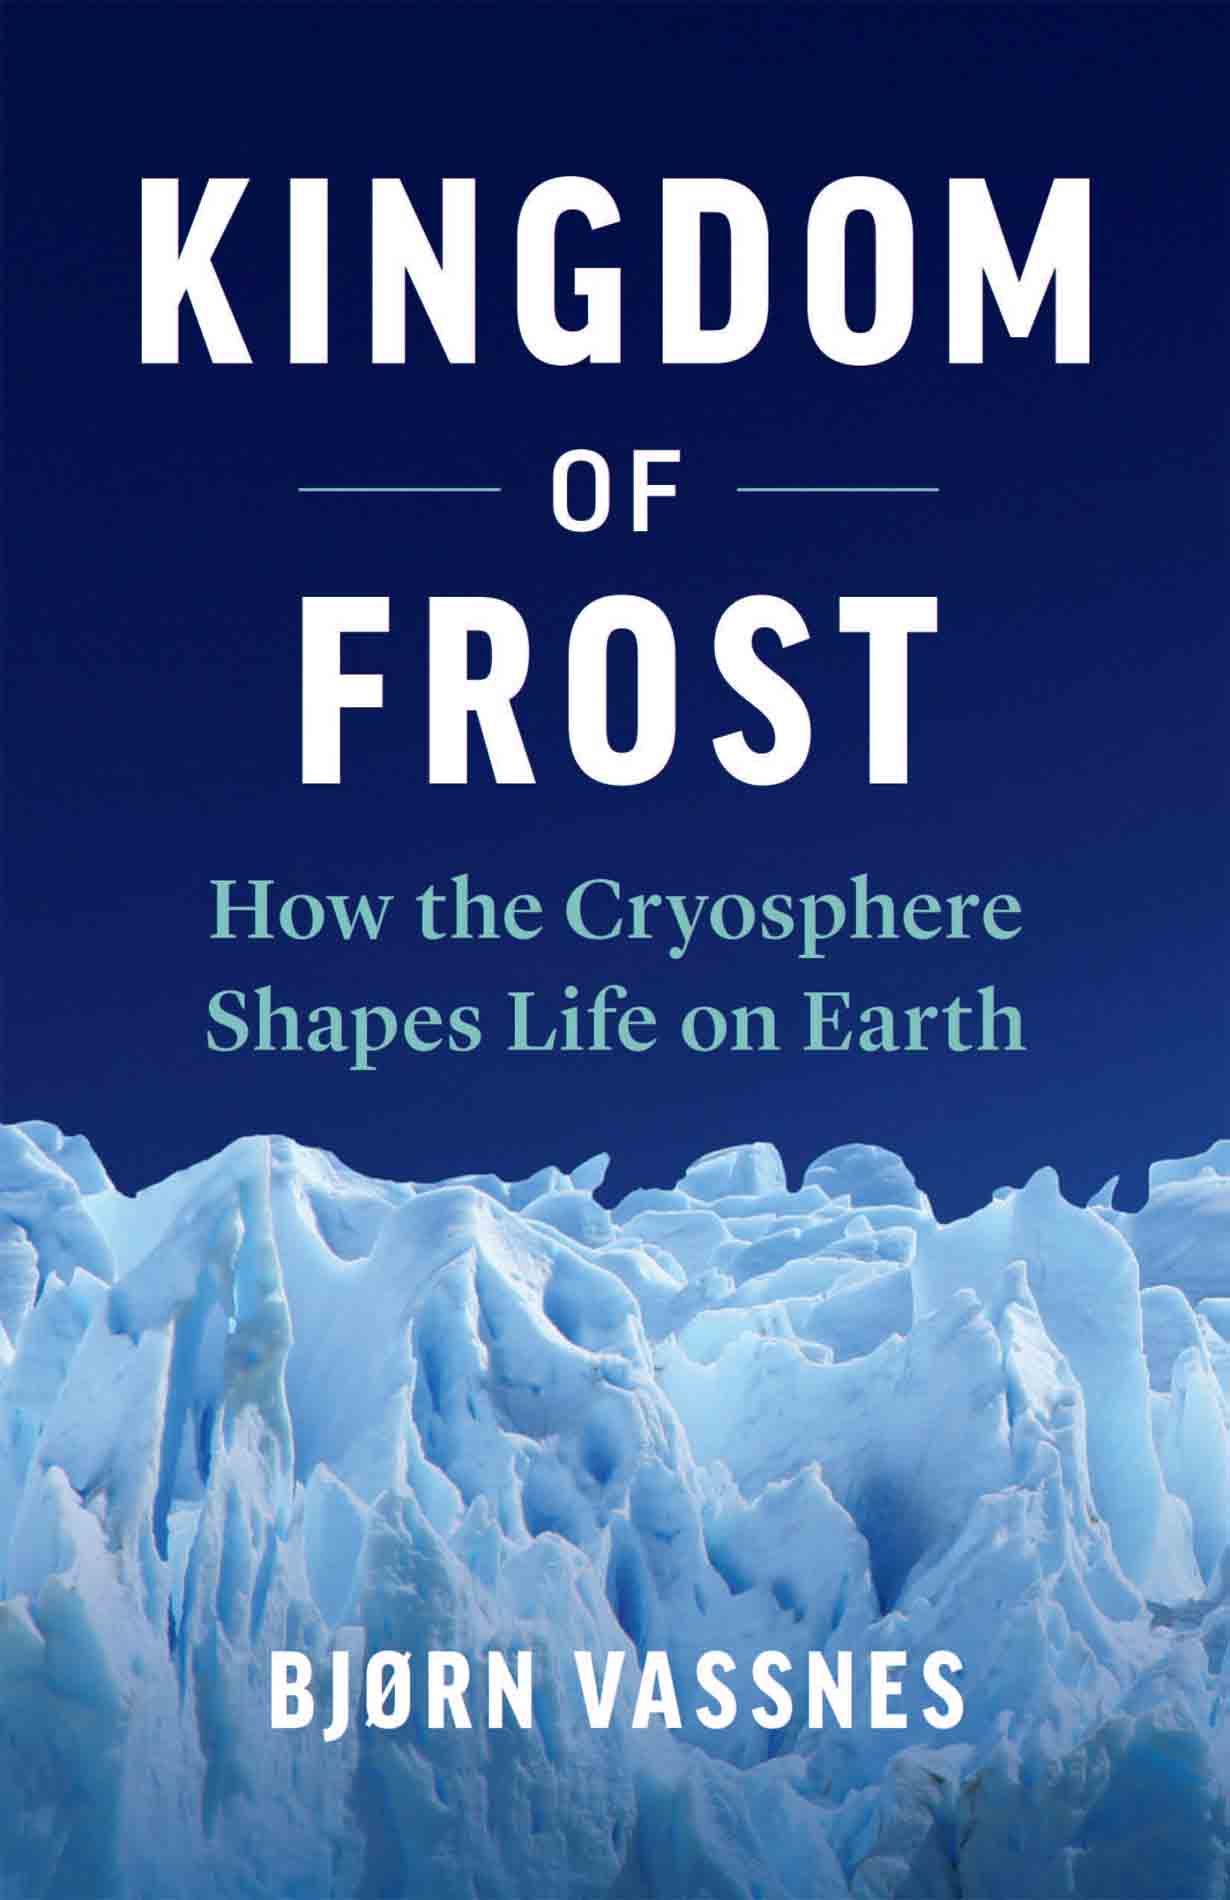 [PDF] [EPUB] Kingdom of Frost: How the Cryosphere Shapes Life on Earth Download by Bjørn Vassnes